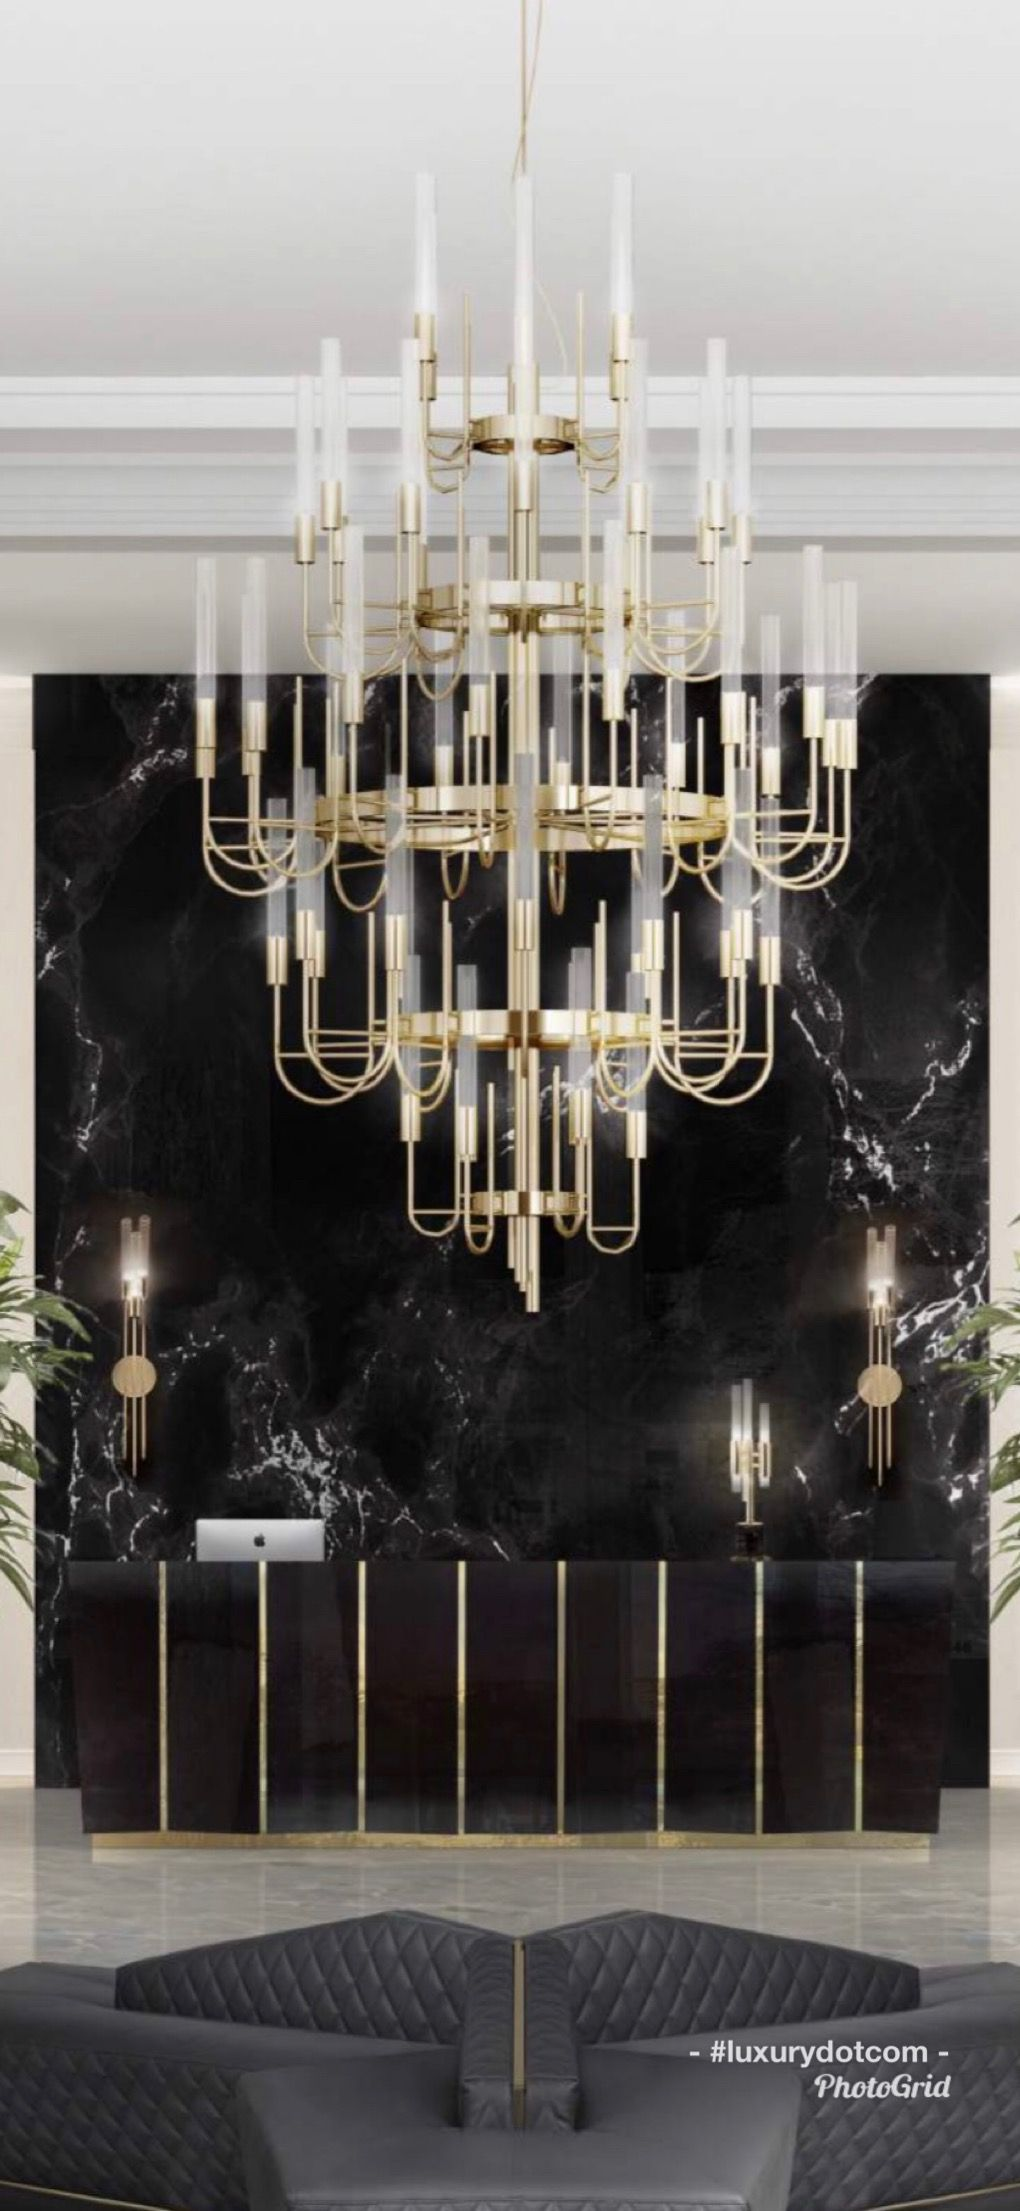 Luxxu design lighting from their catalogue 2019 luxurydotcom